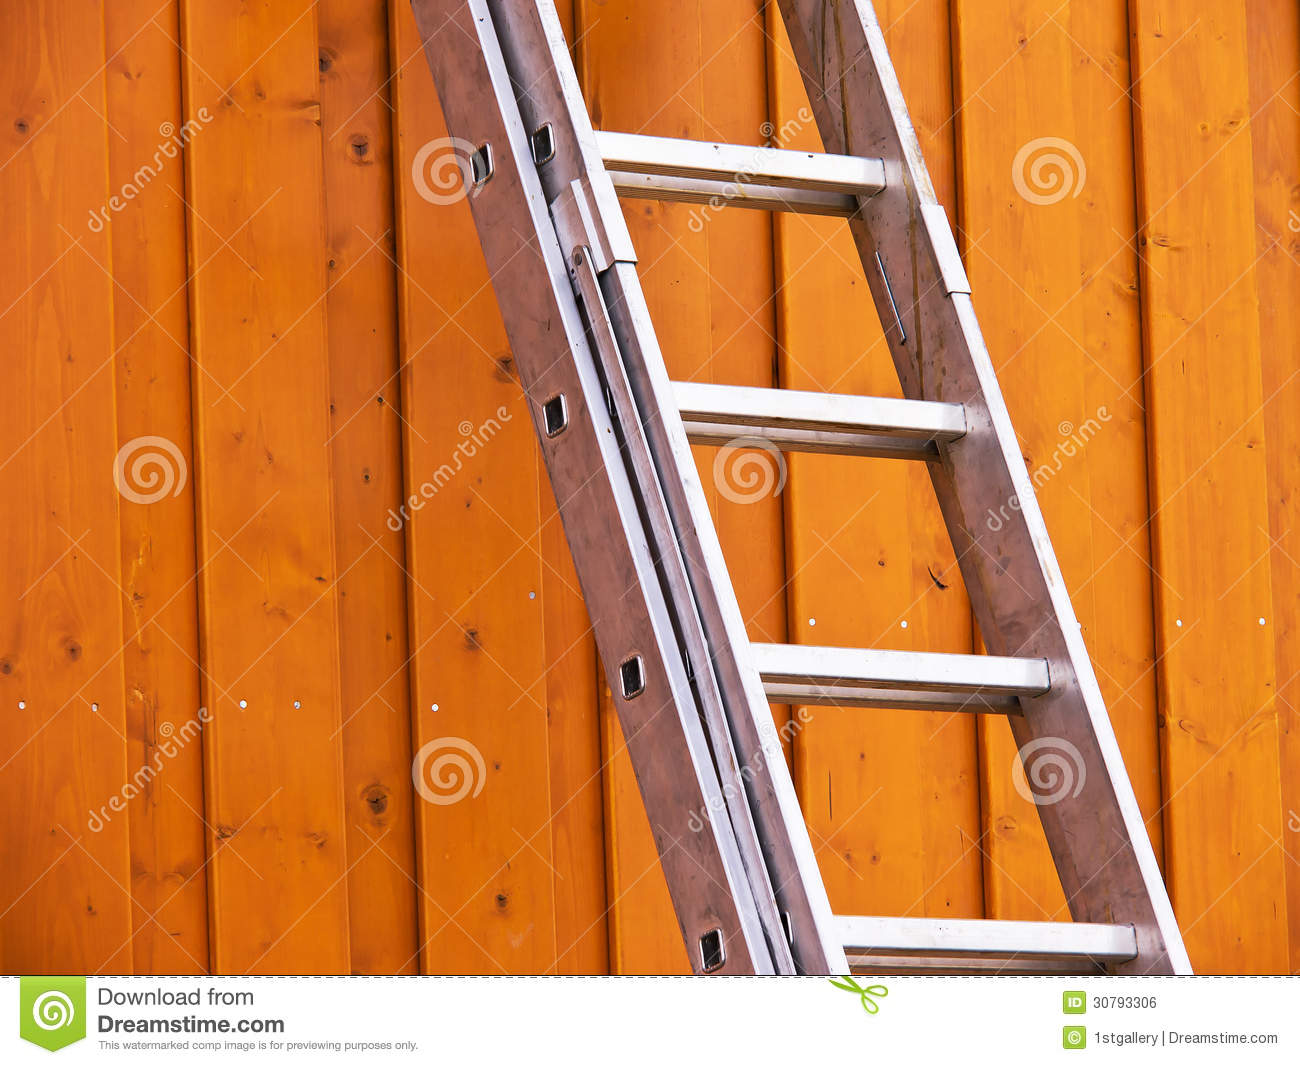 ladder on wall - photo #13